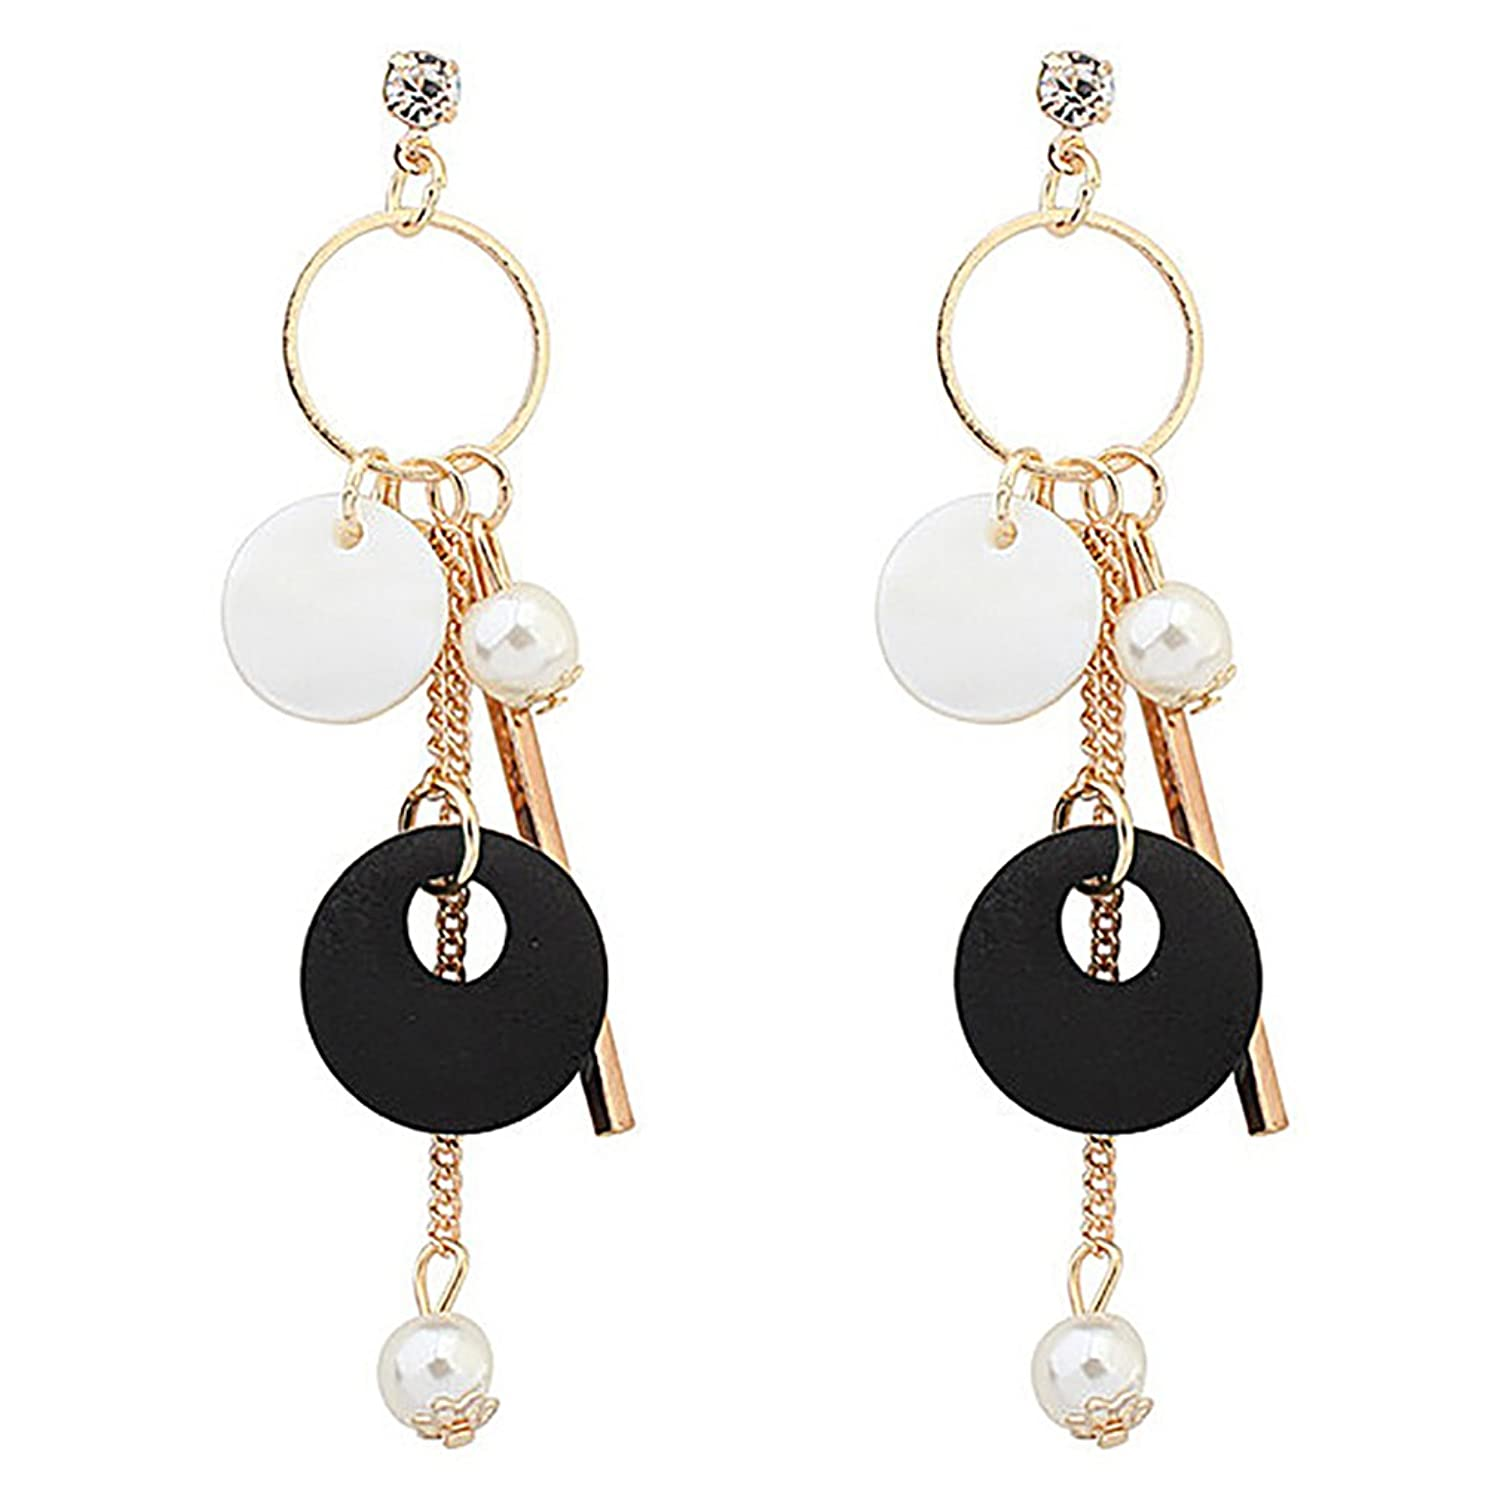 Katie's Style Modern Geometric Simulated Pearl Black and White Resin Bead Statement Drop Dangle Earrings